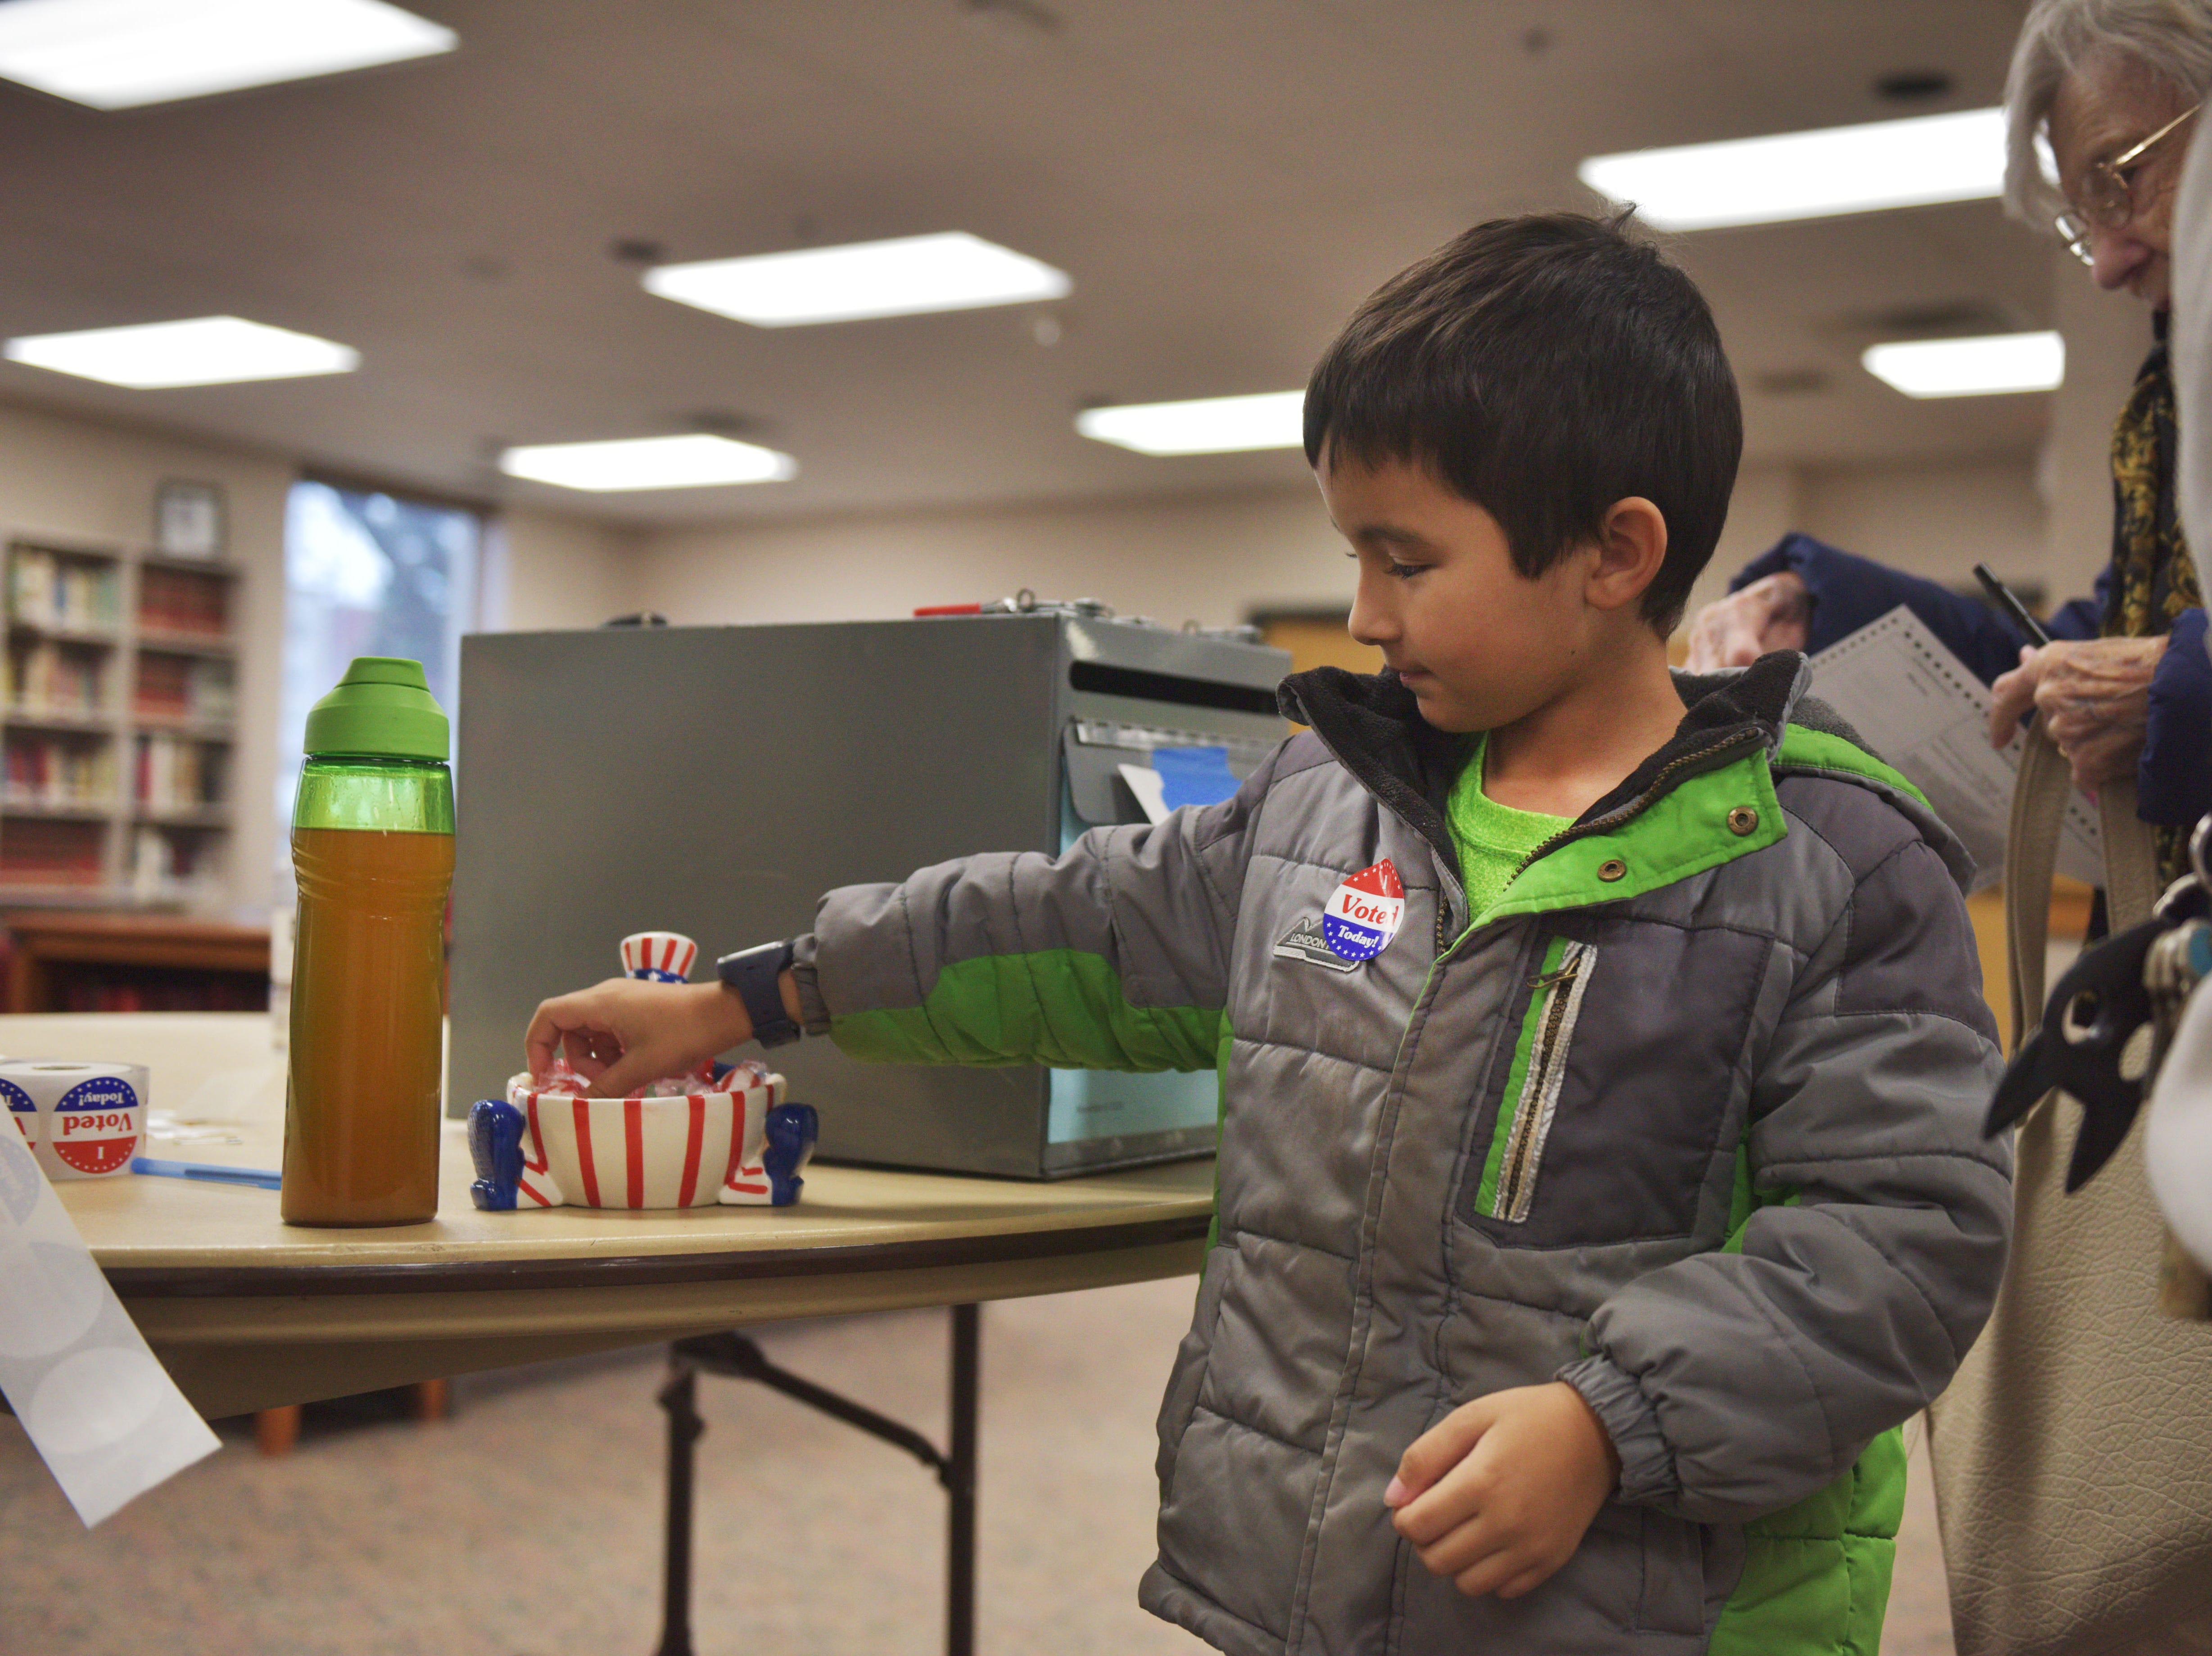 """Maaq Mayo grabs some candy after he gets his """"I voted today!"""" sticker after his mom, Maria Martin, voted in the 2018 midterm elections Tuesday, Nov. 6, at First Lutheran Church in Sioux Falls."""